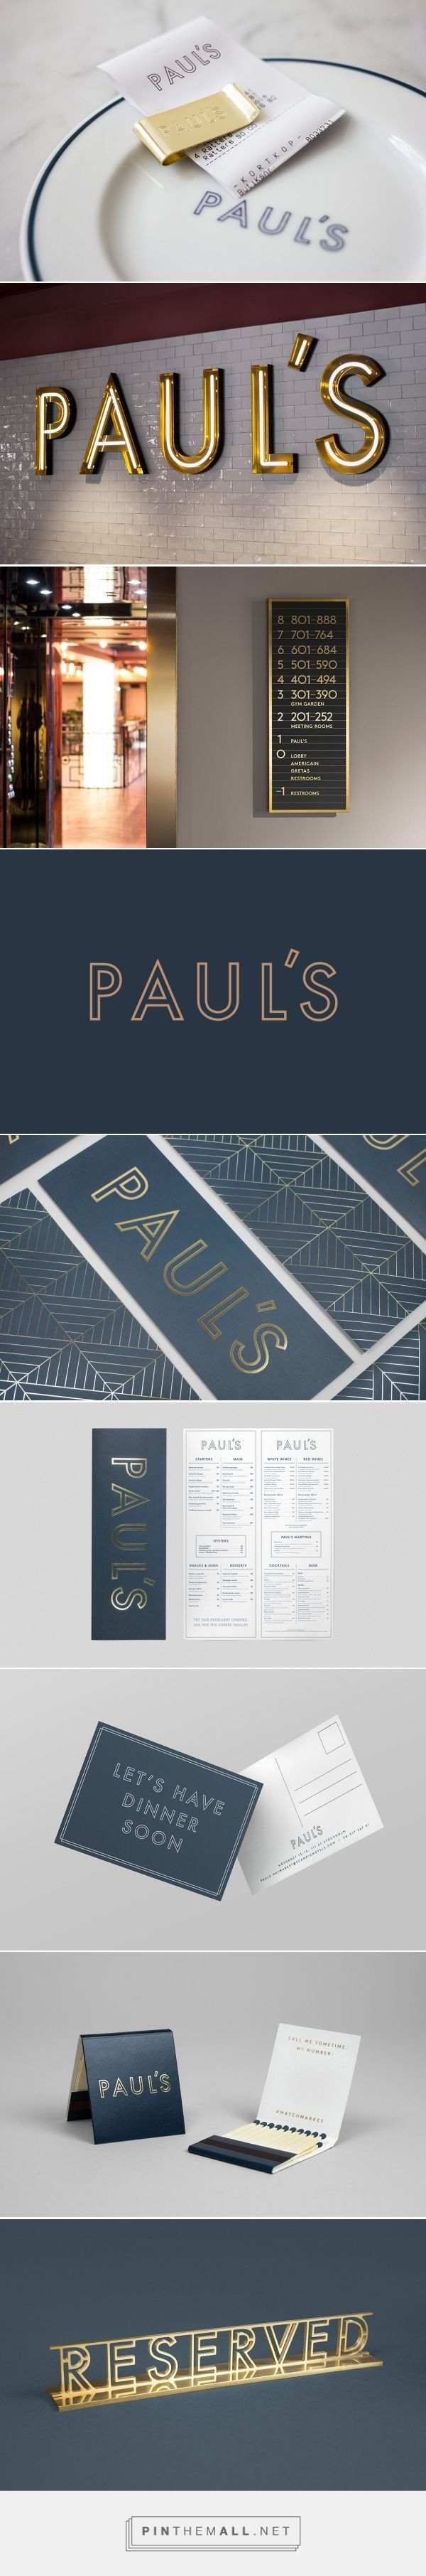 New Brand Identity for Paul's at Haymarket by 25AH